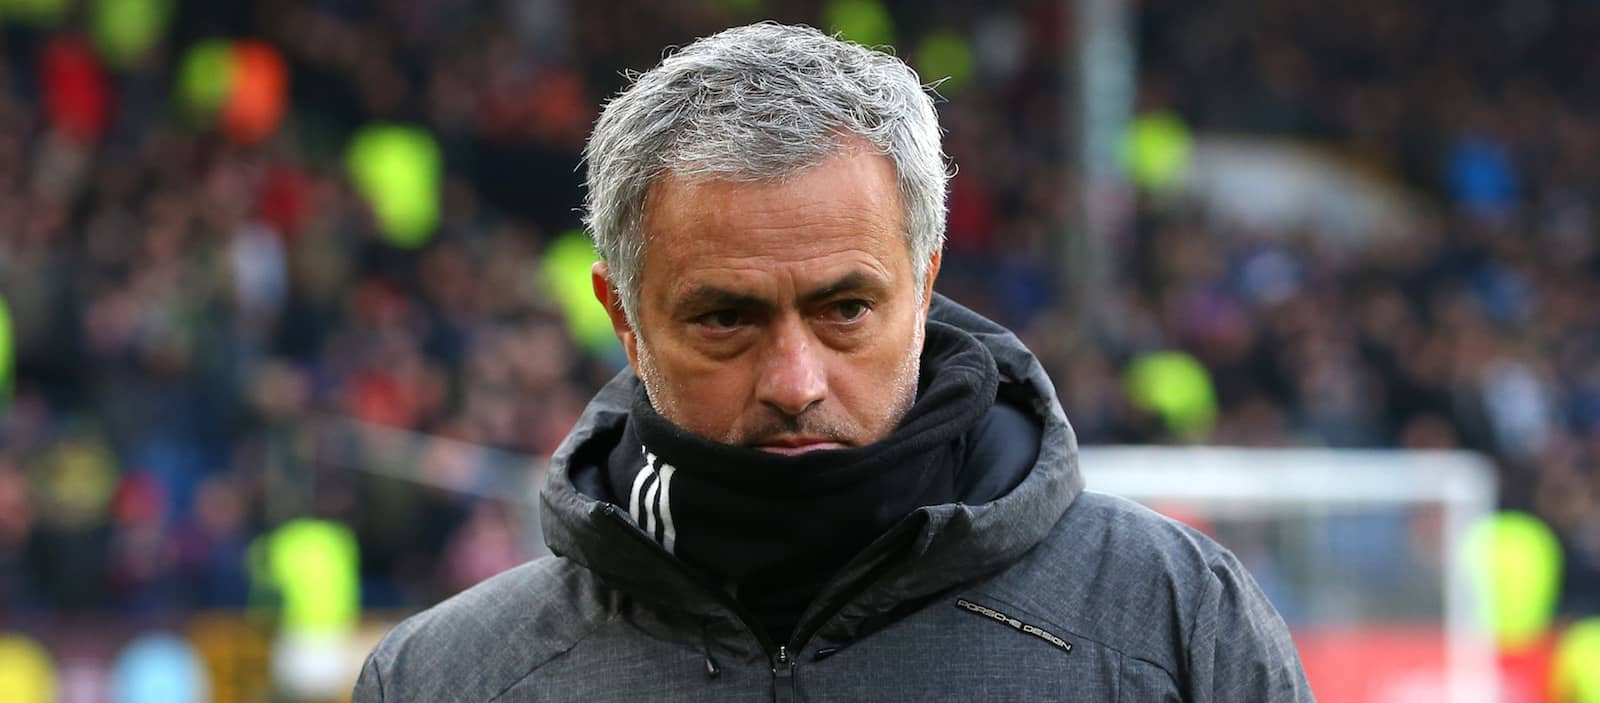 Jose Mourinho: Manchester United wouldn't have scored in ten hours against Newcastle United